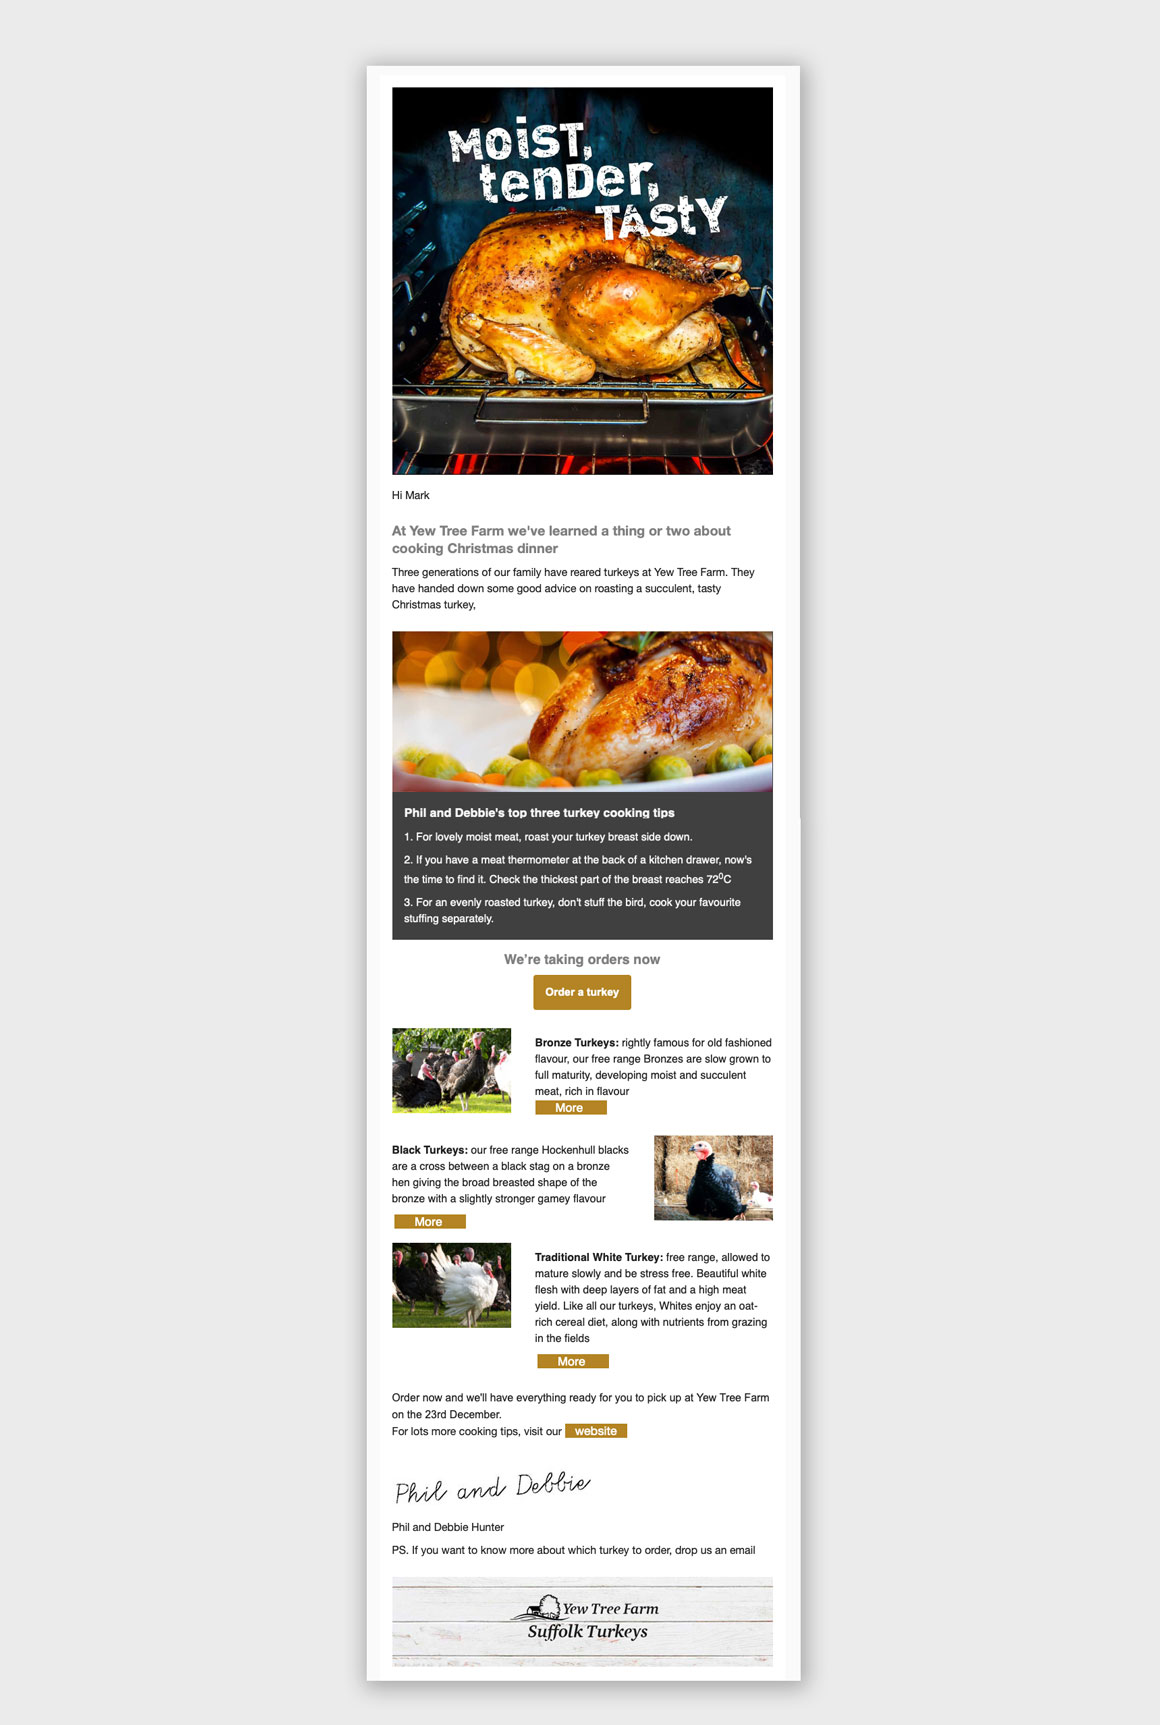 Email for Yew Tree Farm's Turkeys headlined 'Moist, tender, tasty' created by email marketing agency Greenwood&Bell